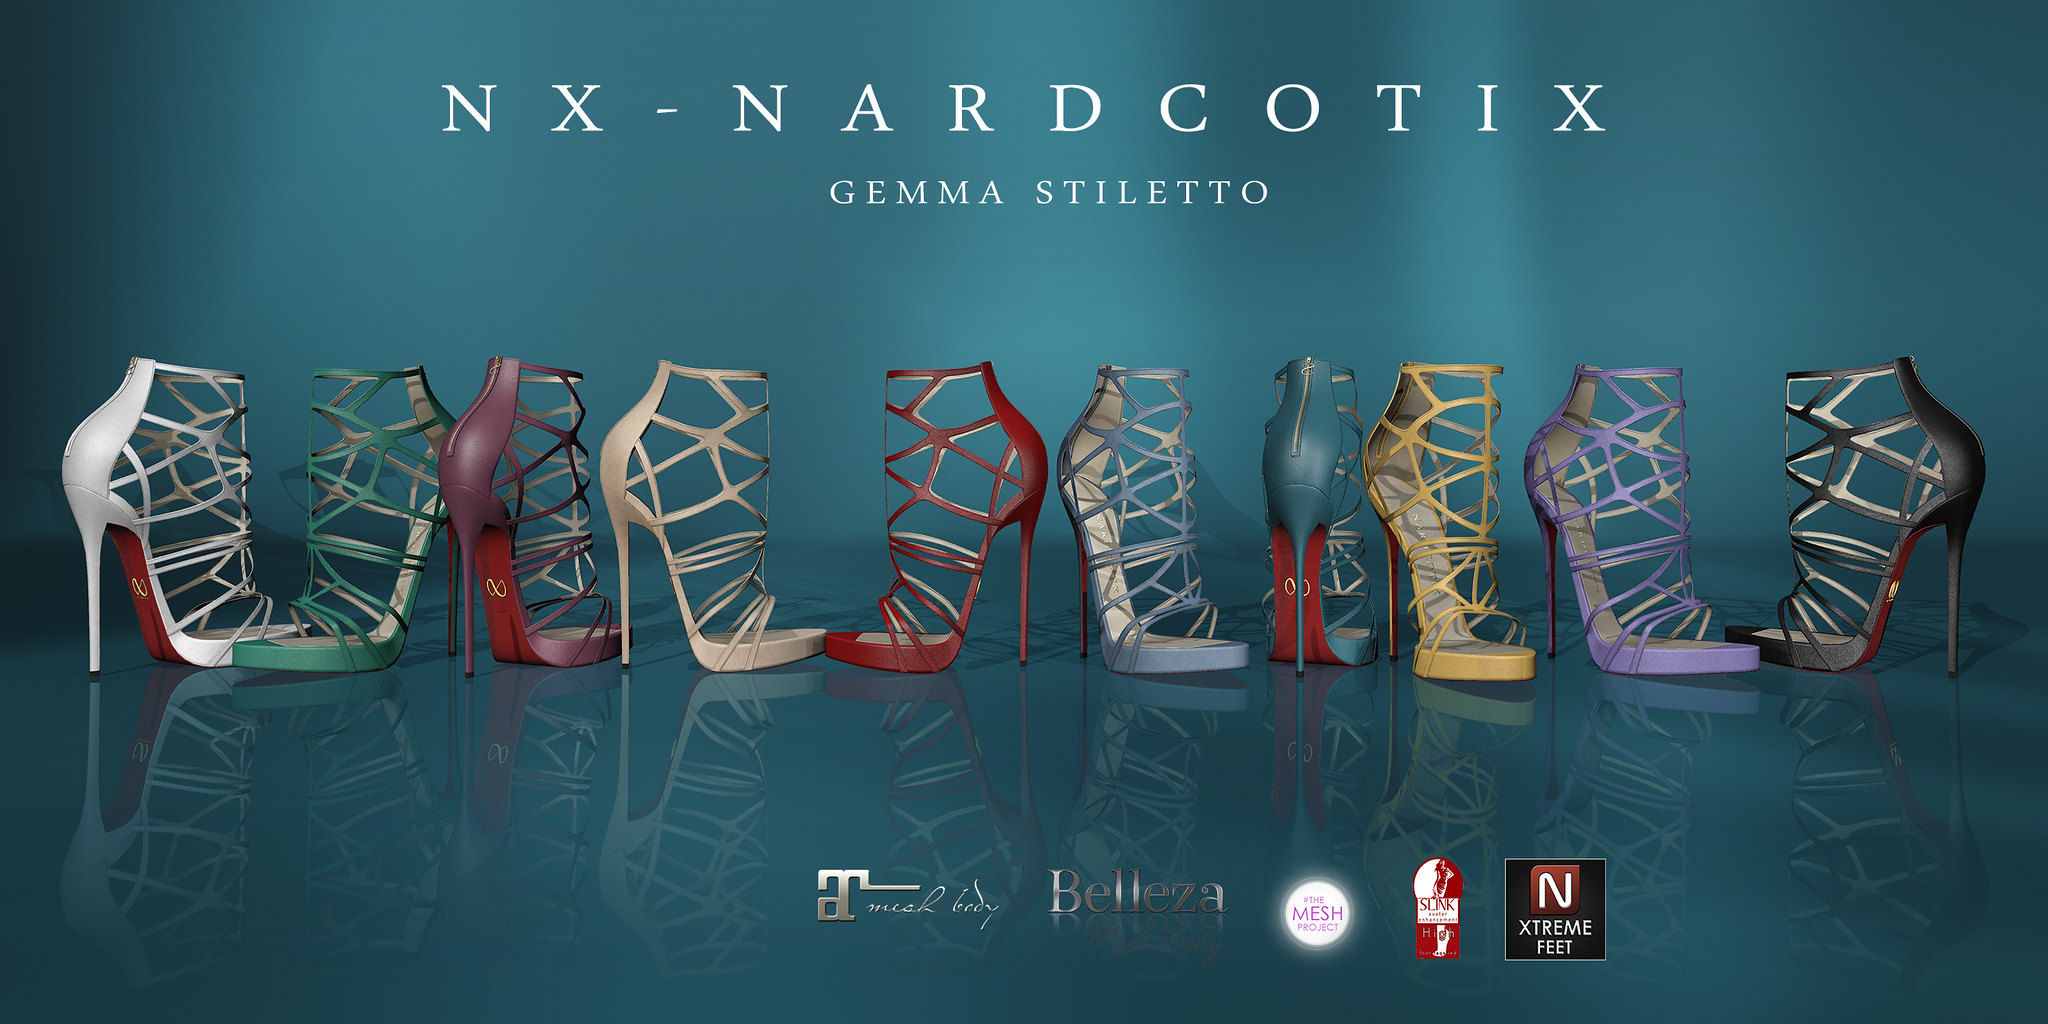 NX-Nardcotix Gemma Stiletto for Shiny Shabby